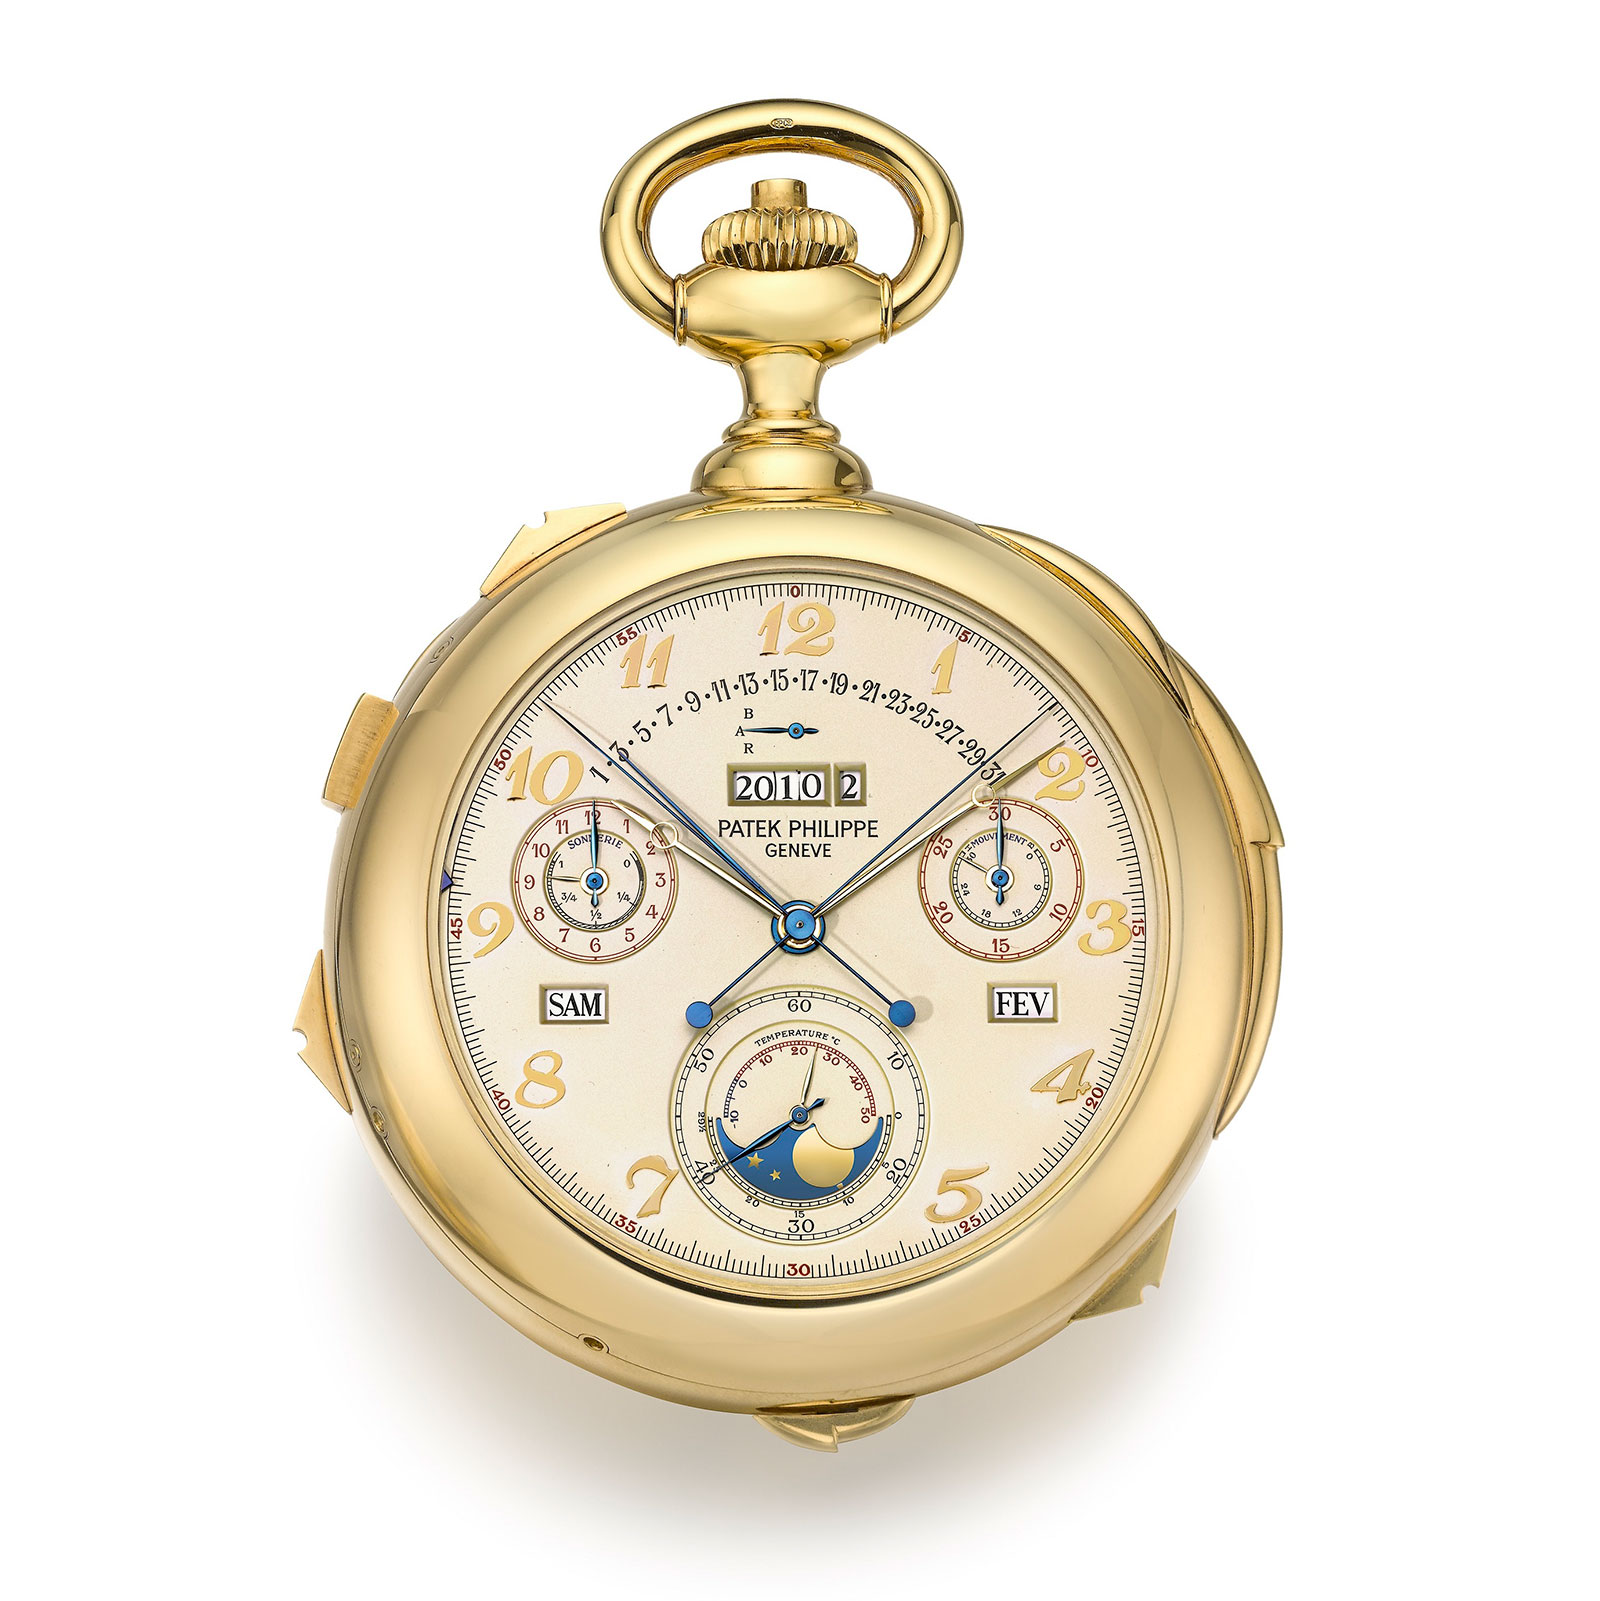 Patek Philippe calibre 89 yellow gold sothebys 1